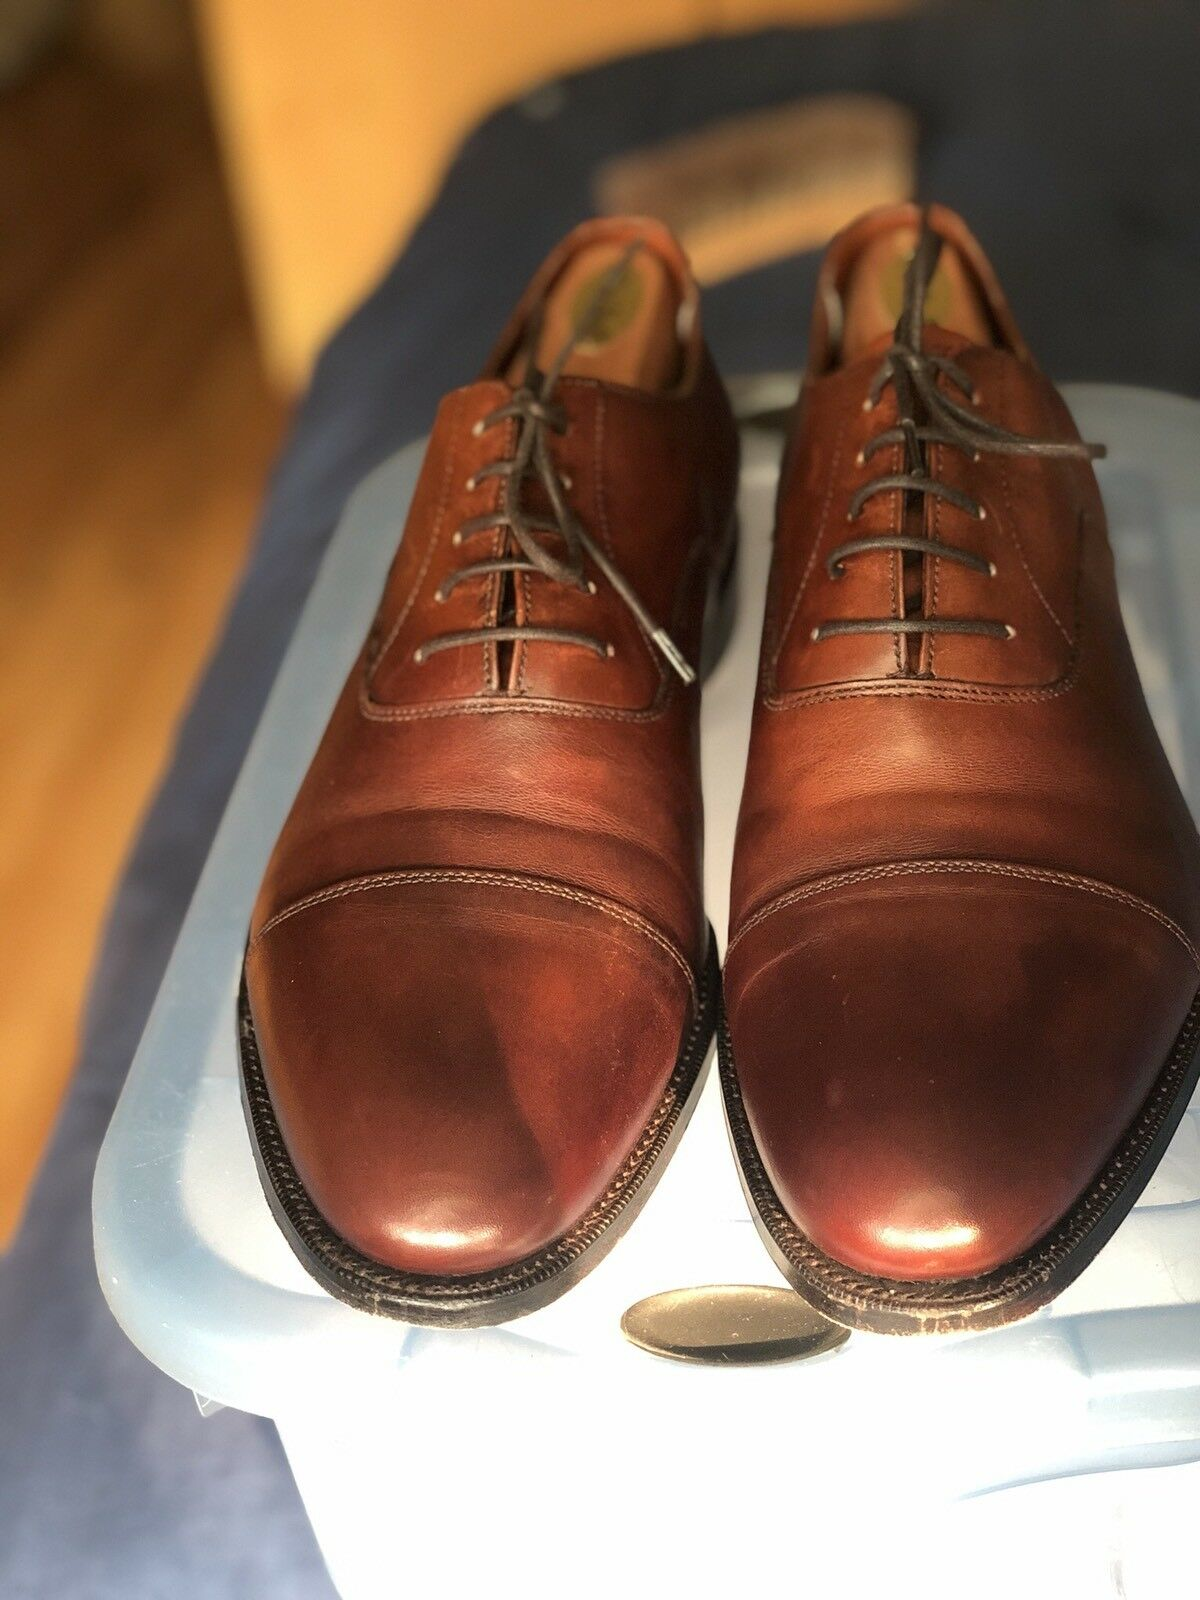 Paul Stuart Stuart's Choice Luz Marrón captoe Zapatos Grenson Masterpiece 11